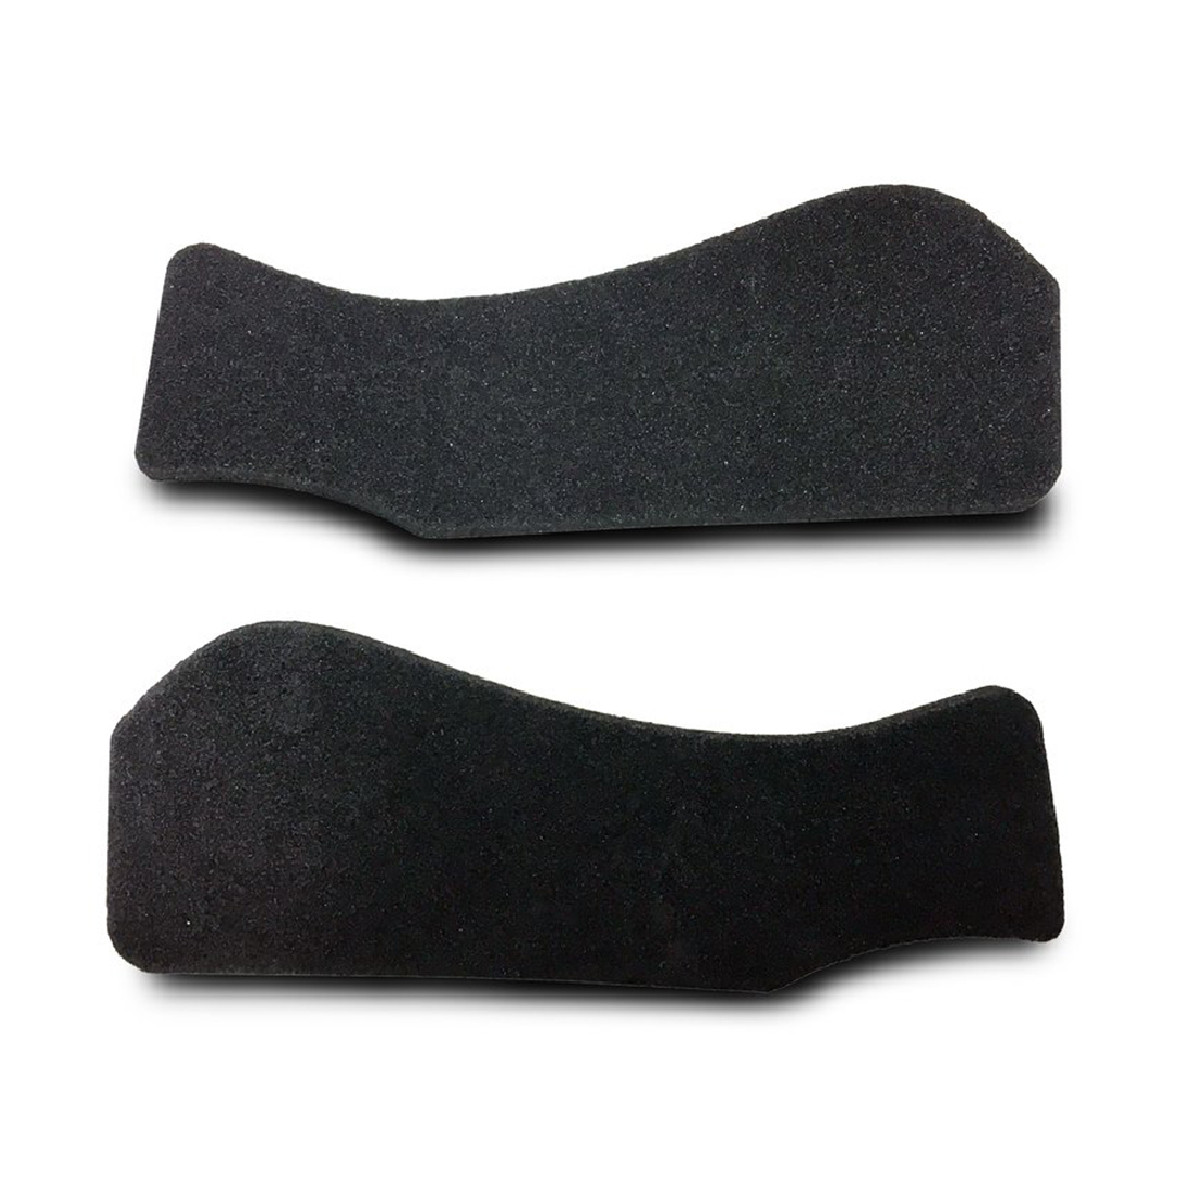 Kask Lateral Inserts